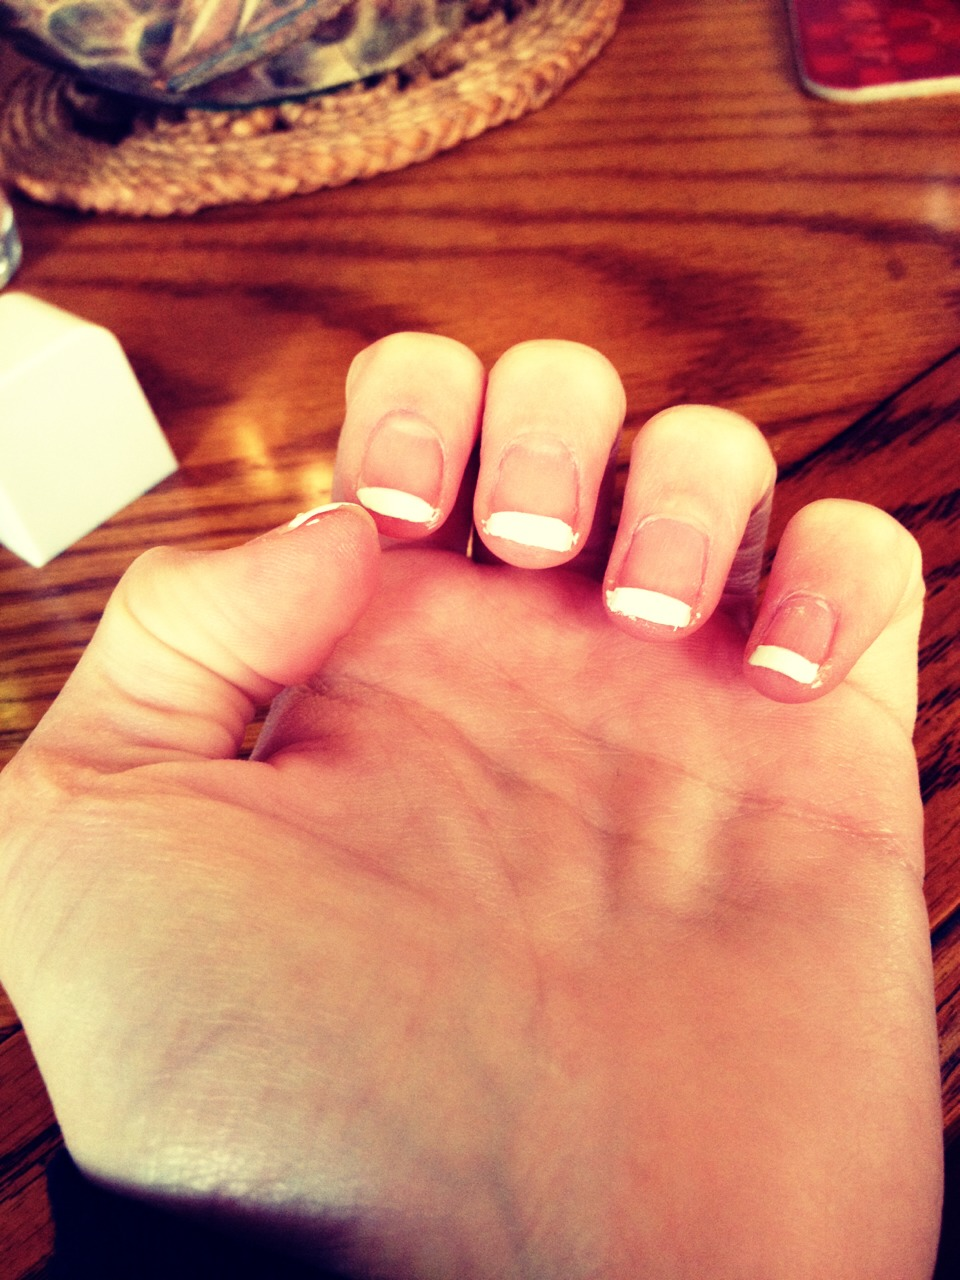 While the polish is still wet take the tape off I would do one nail at a time